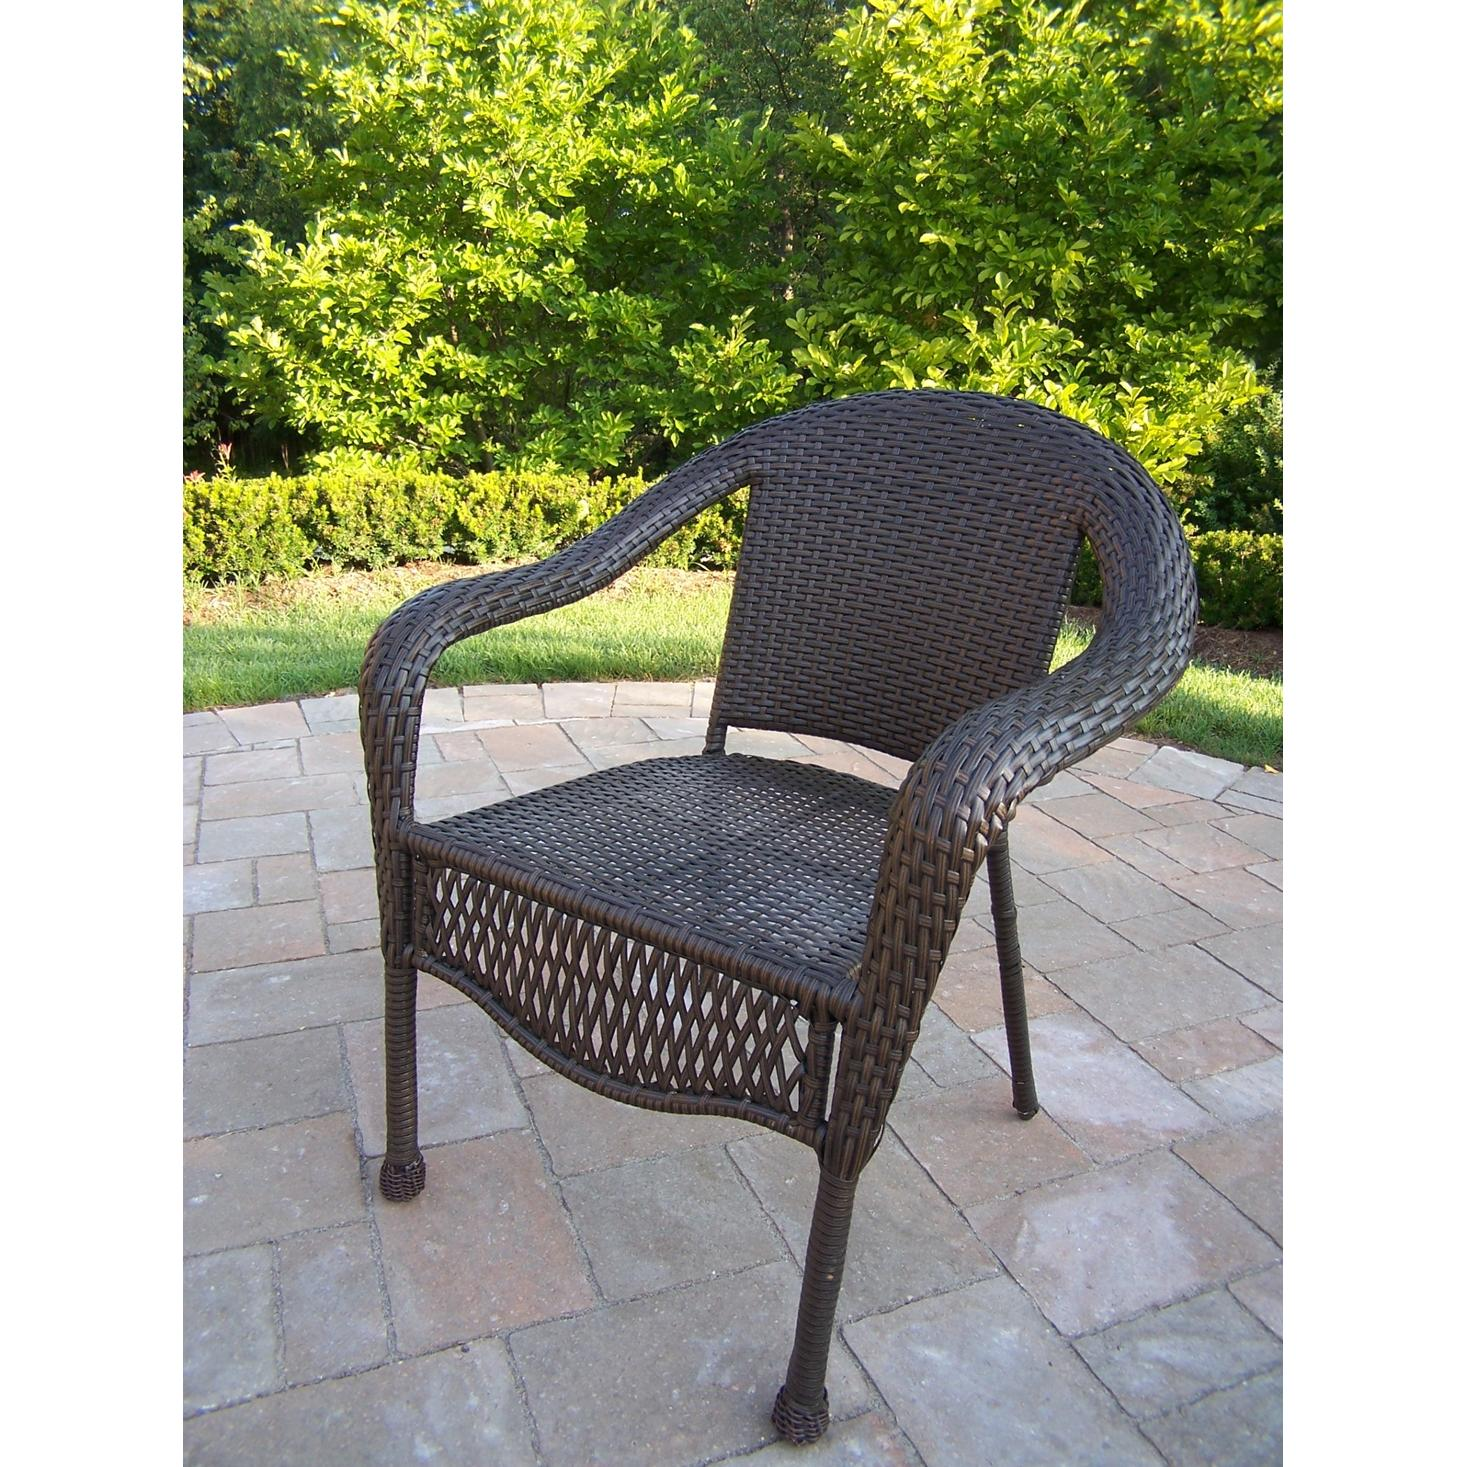 Warm Resin Wicker Patio Furniture Wicker Furniture Ingrid Furniture